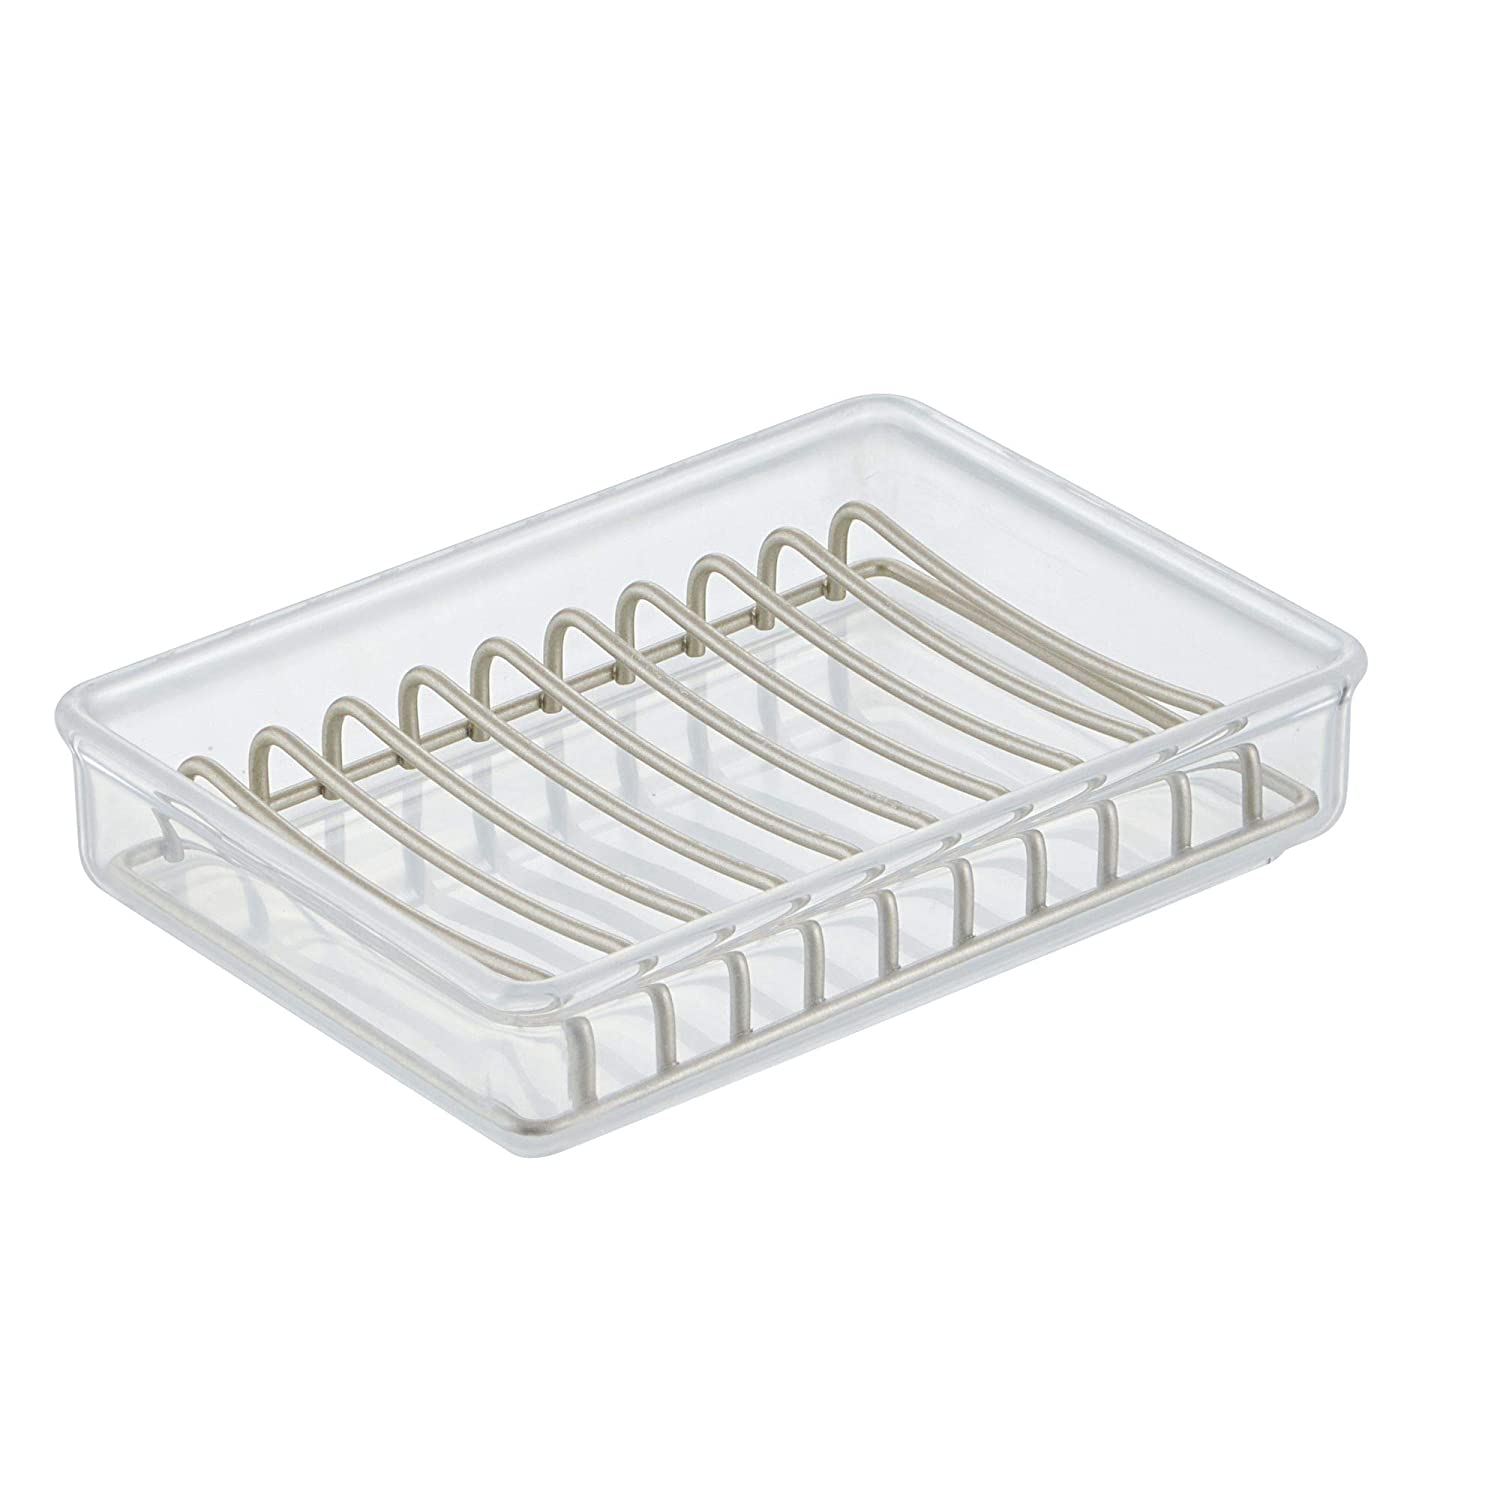 Kitchen Sink Clear//Satin MetroDecor 00482MDKEU Pack of 2 mDesign Soap Bar Dish with Tray for Bathroom Vanities